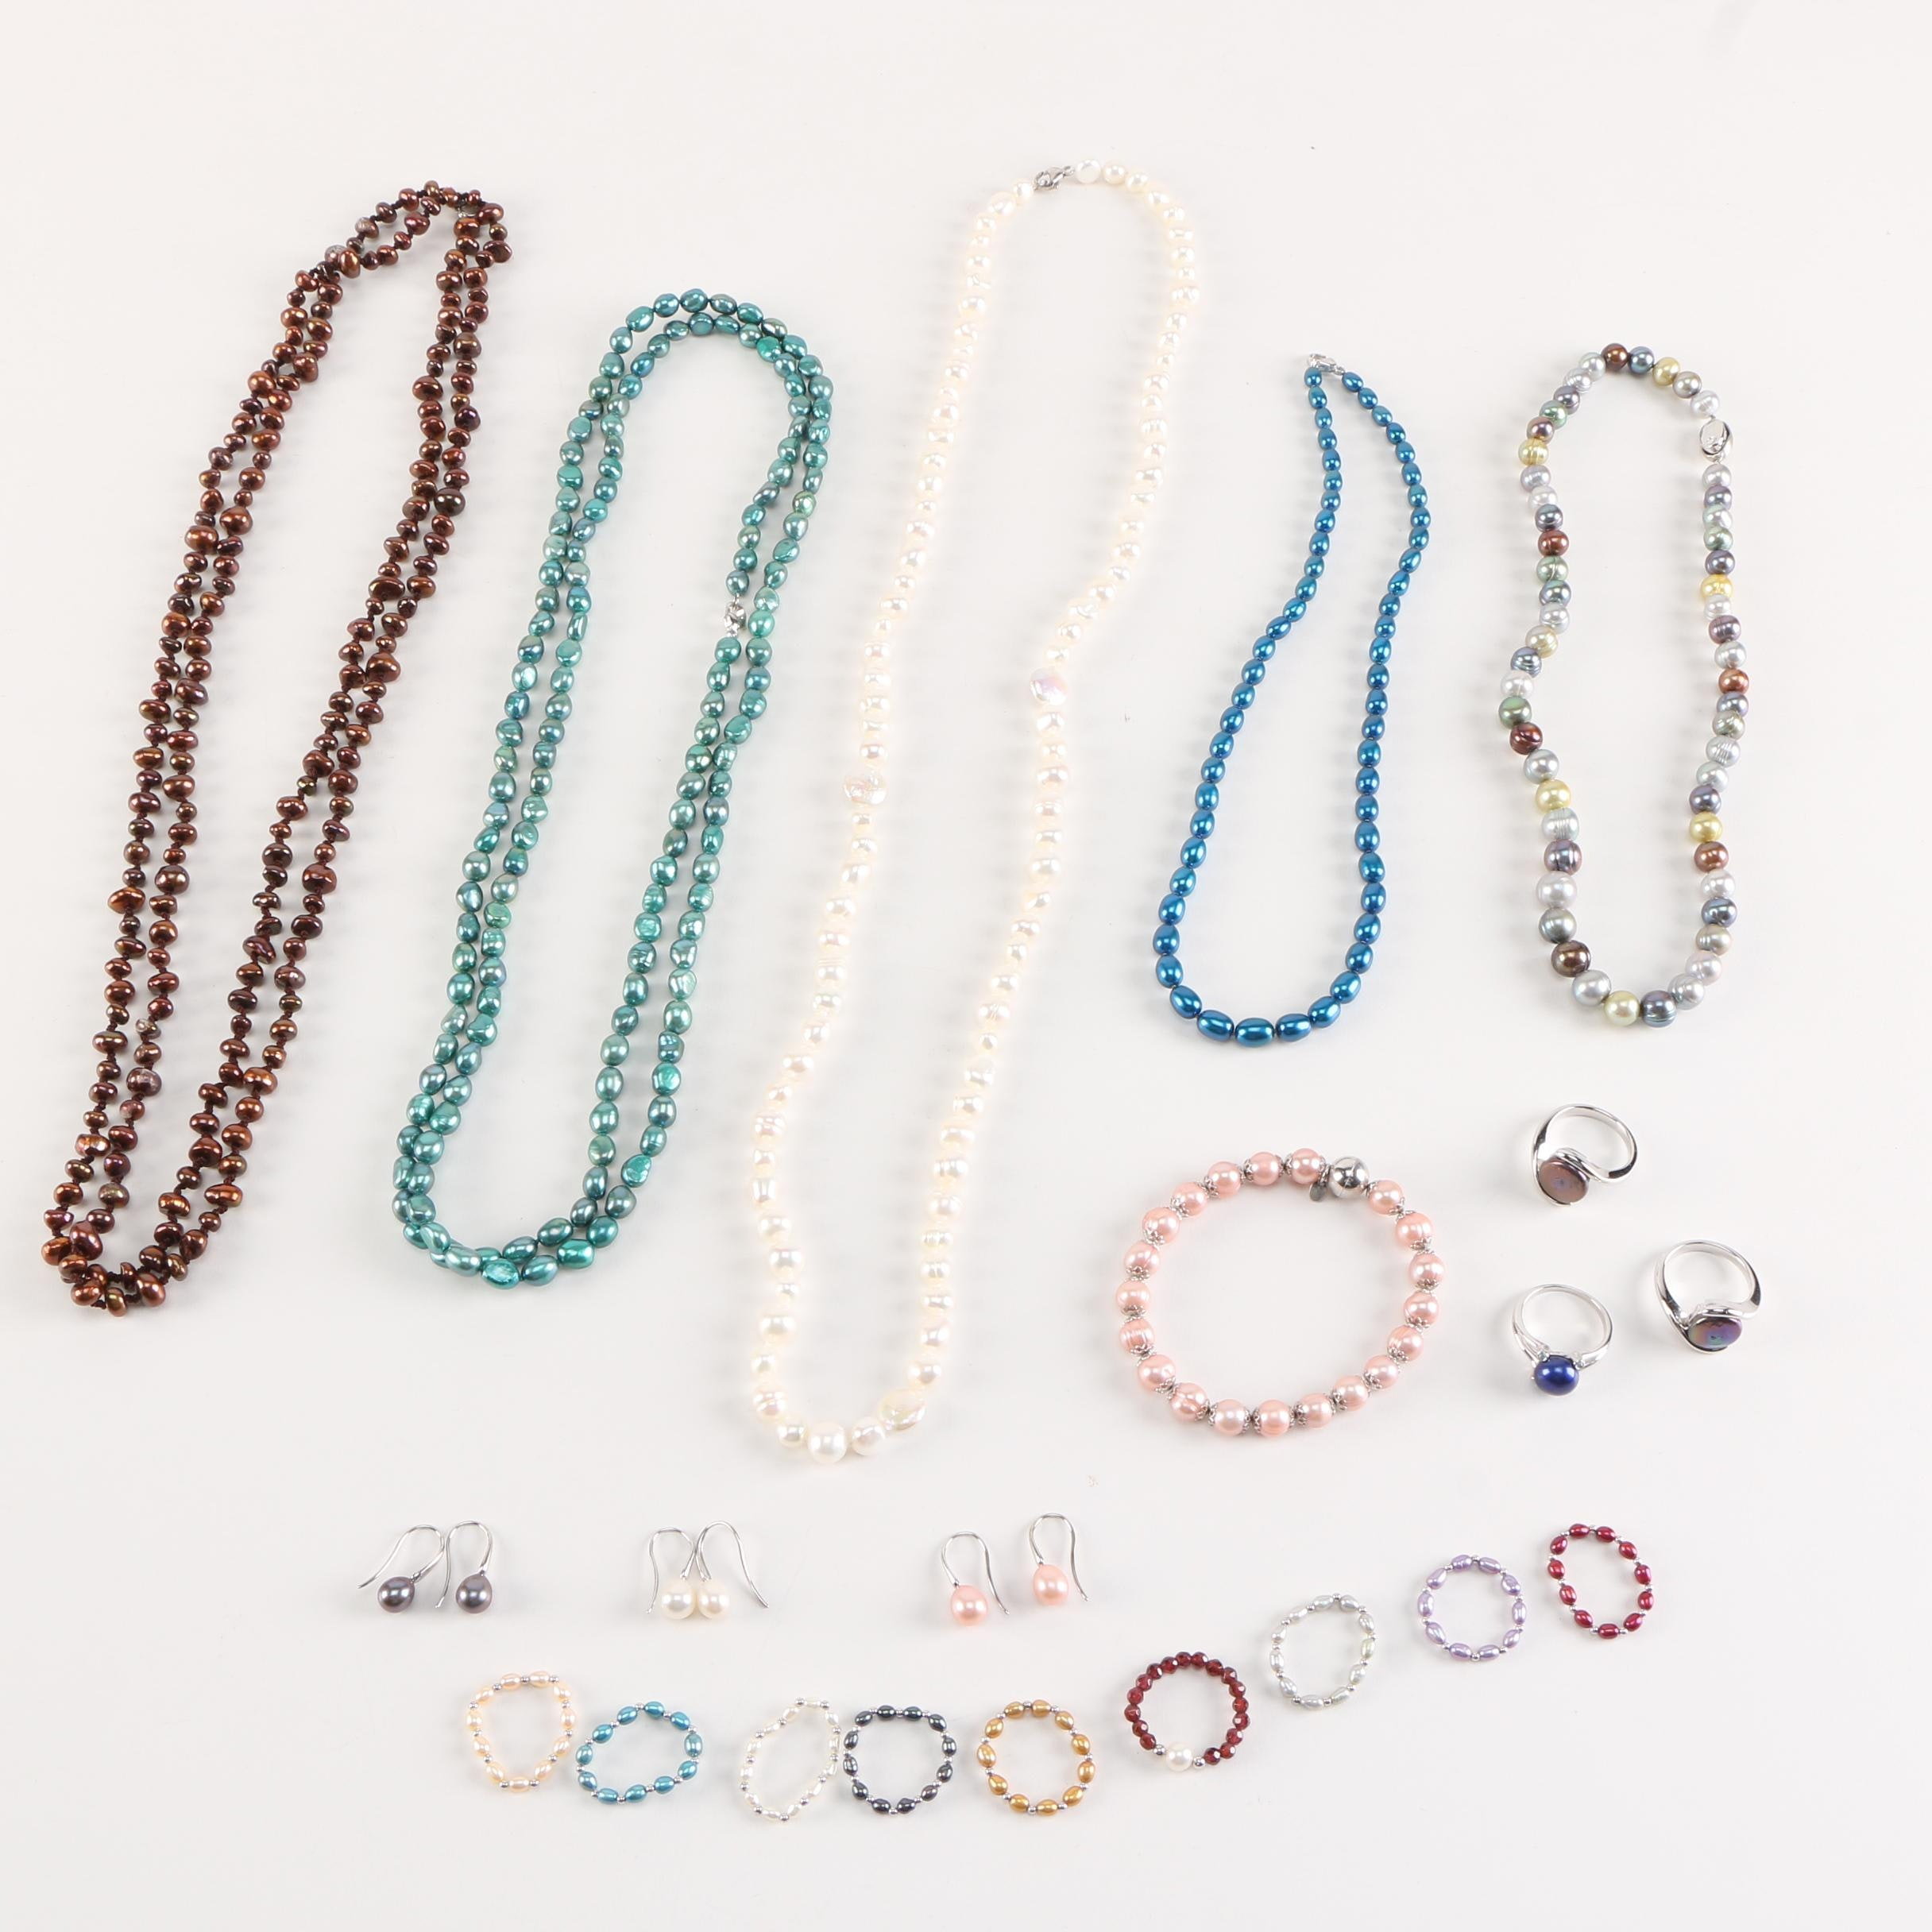 Beaded Cultured and Faux Pearl Jewelry With Sterling Silver Findings